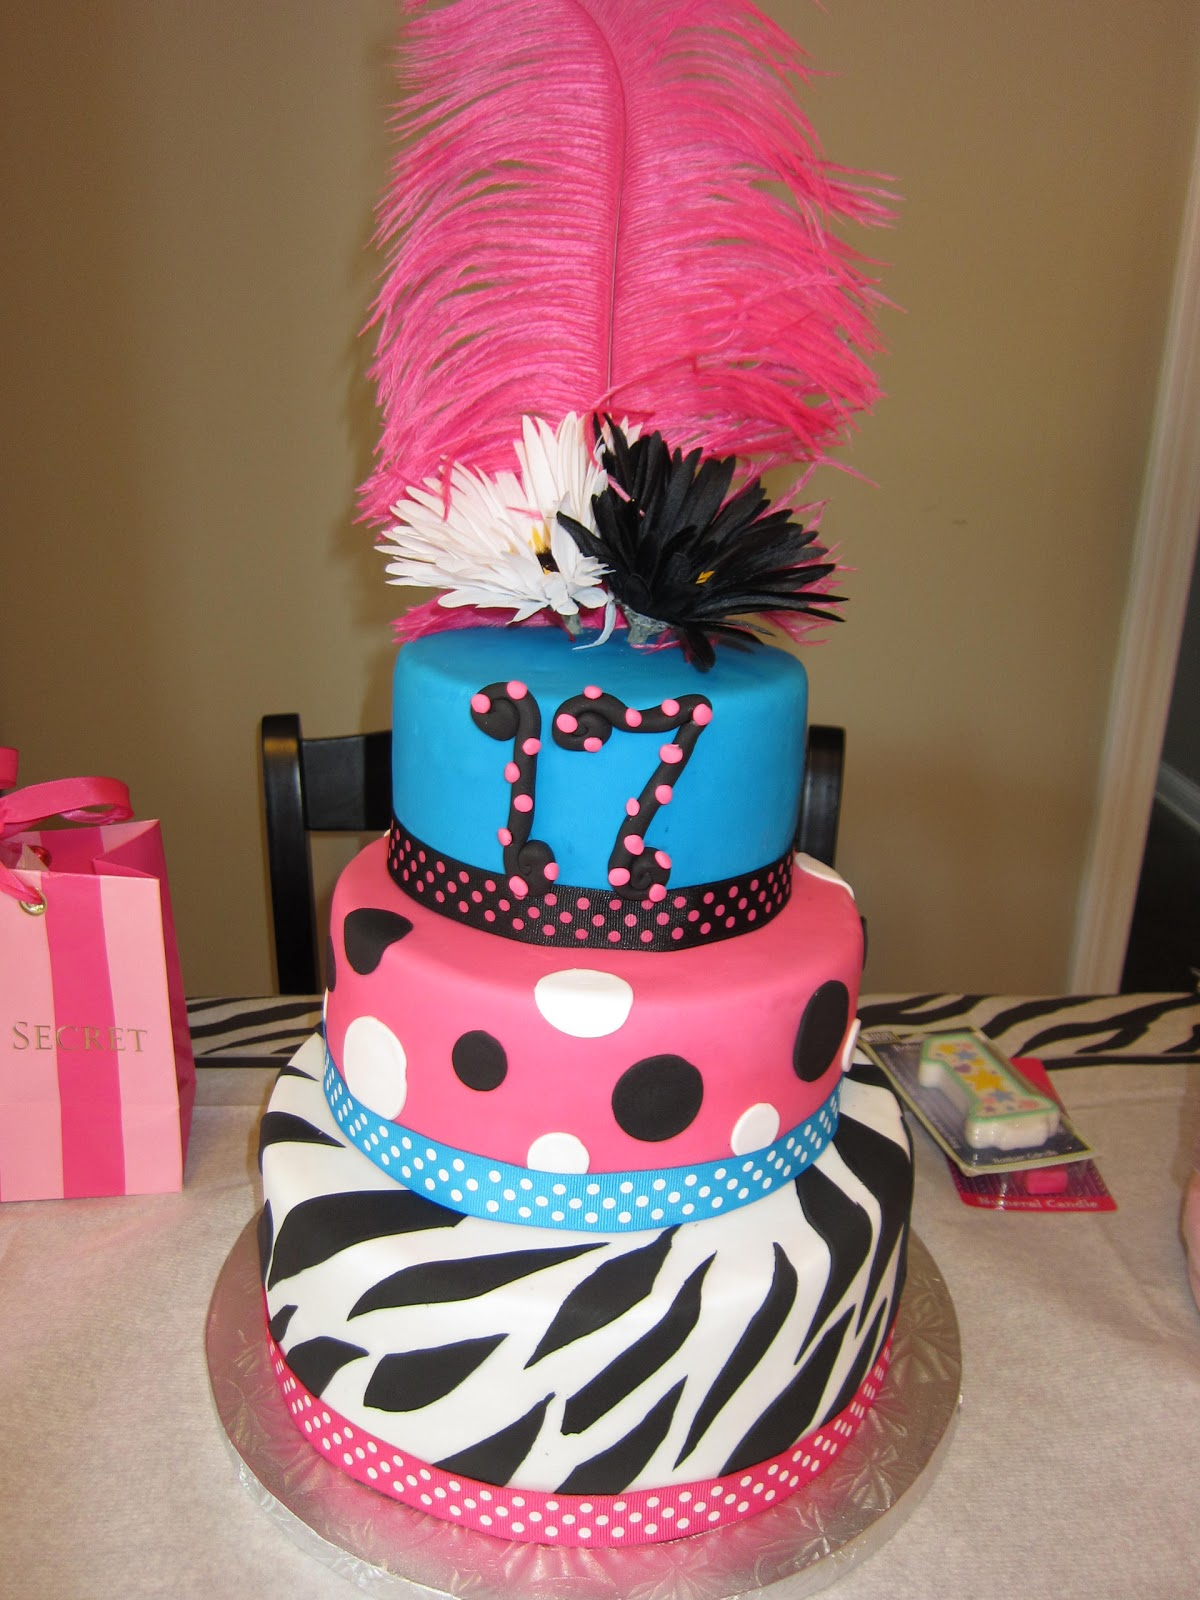 Sabtabulous Cakes 17th Birthday Cake